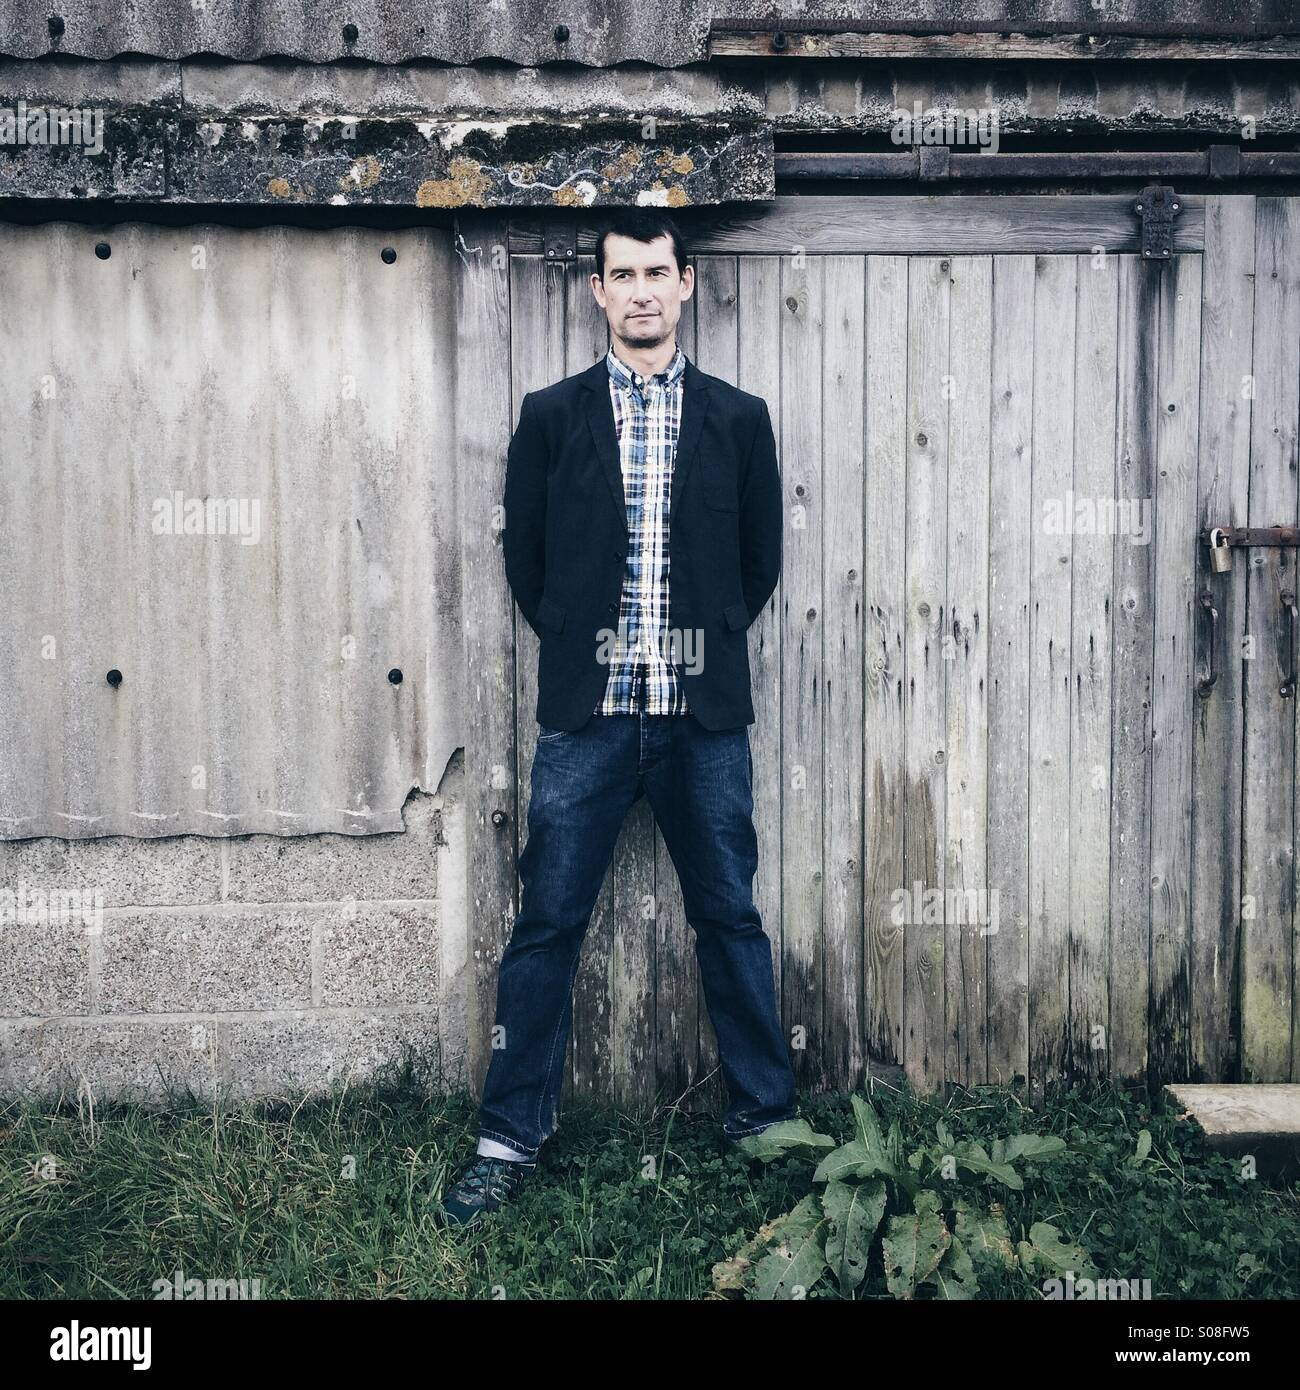 Man standing against a barn, dressed casually in jeans and a jacket. - Stock Image